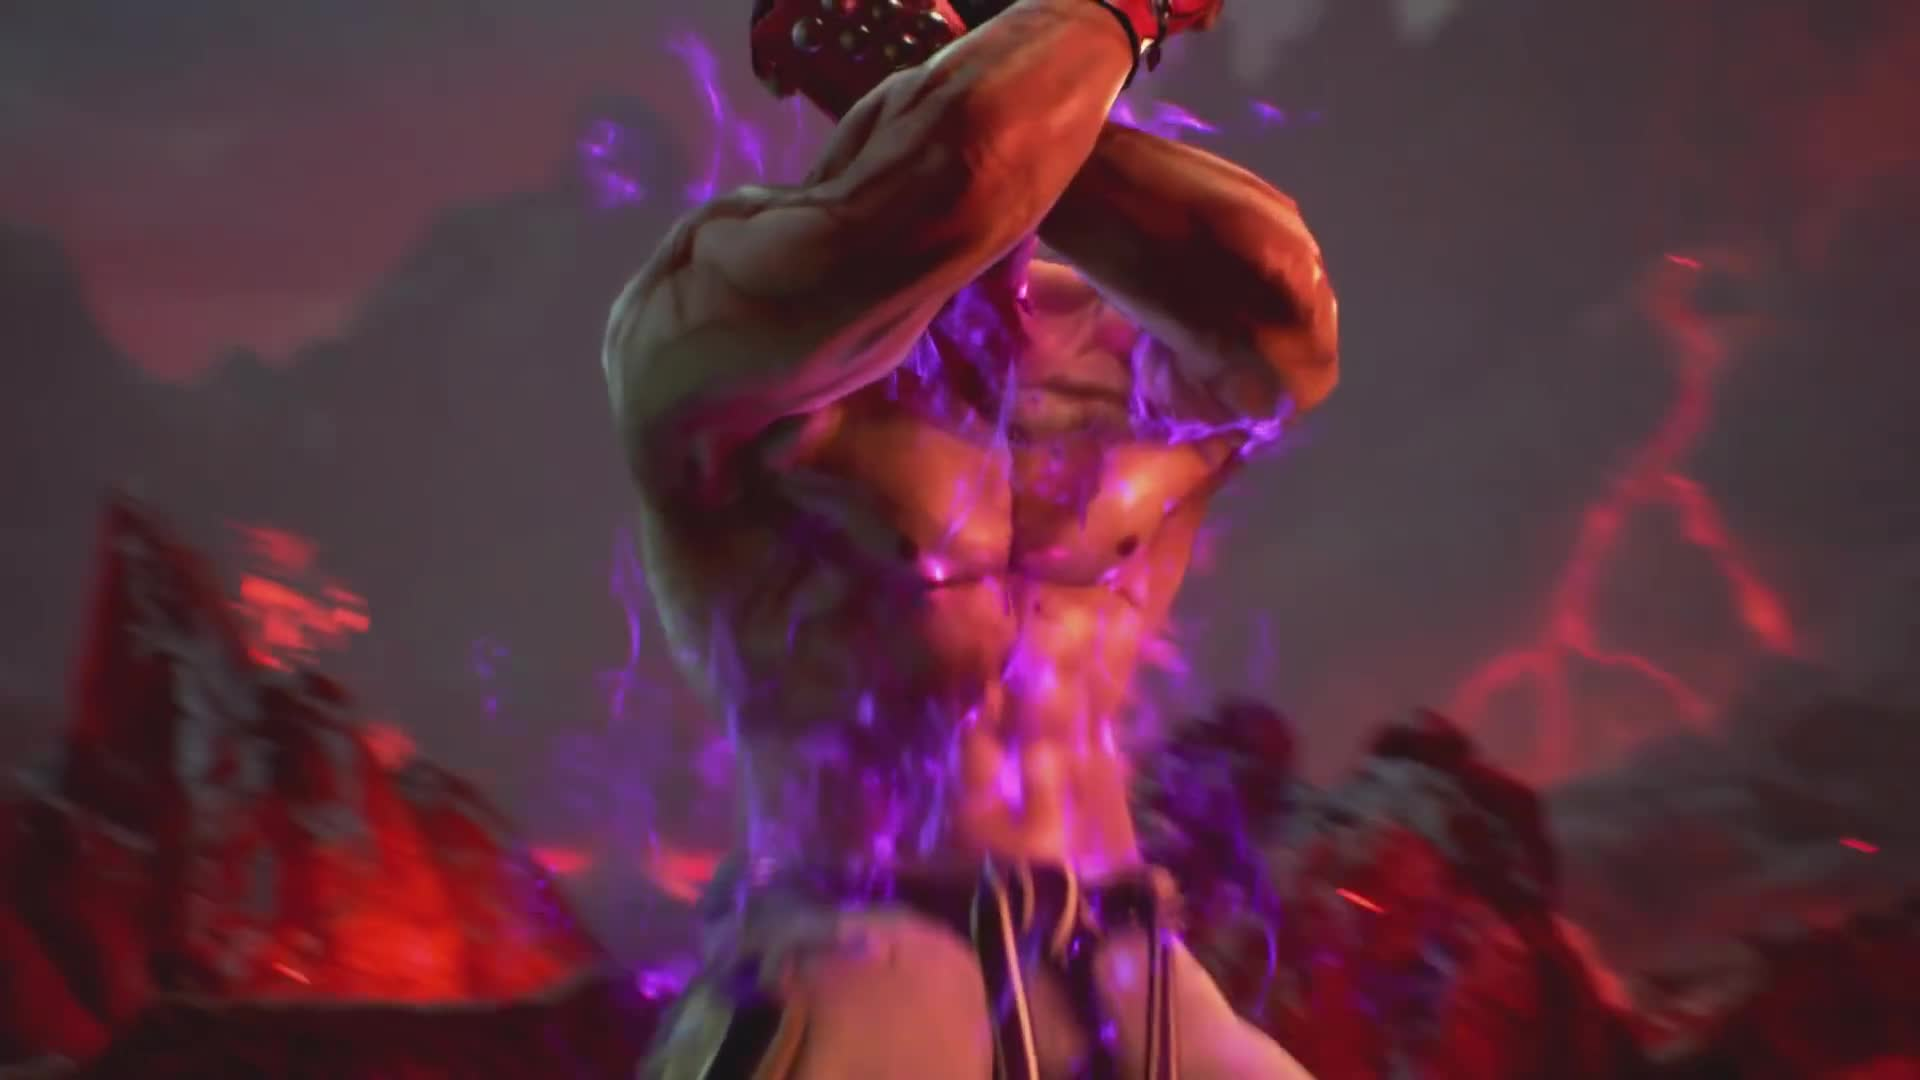 Tekken 7 Chapter 14 Gifs Search | Search & Share on Homdor